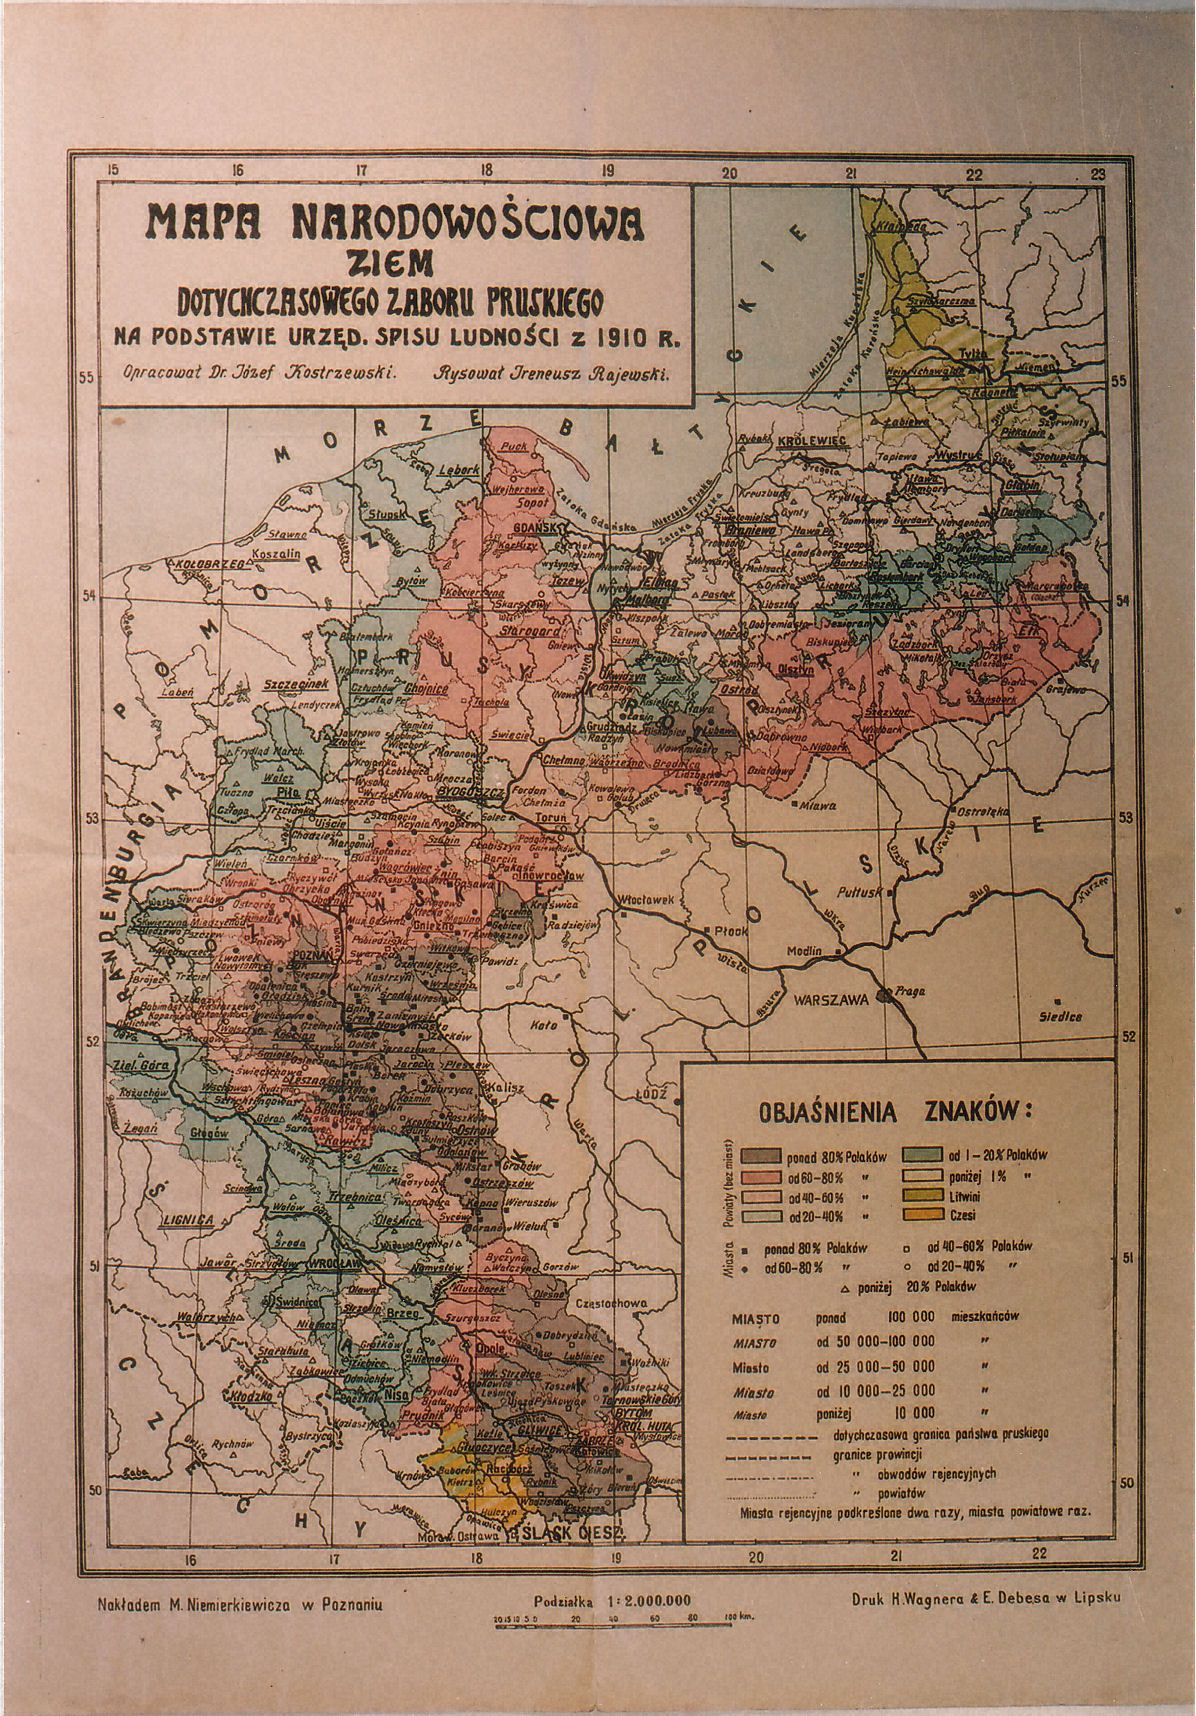 Ethnic Map Of The Former Prussian Partition Lands Based On The - Census us 1910 map